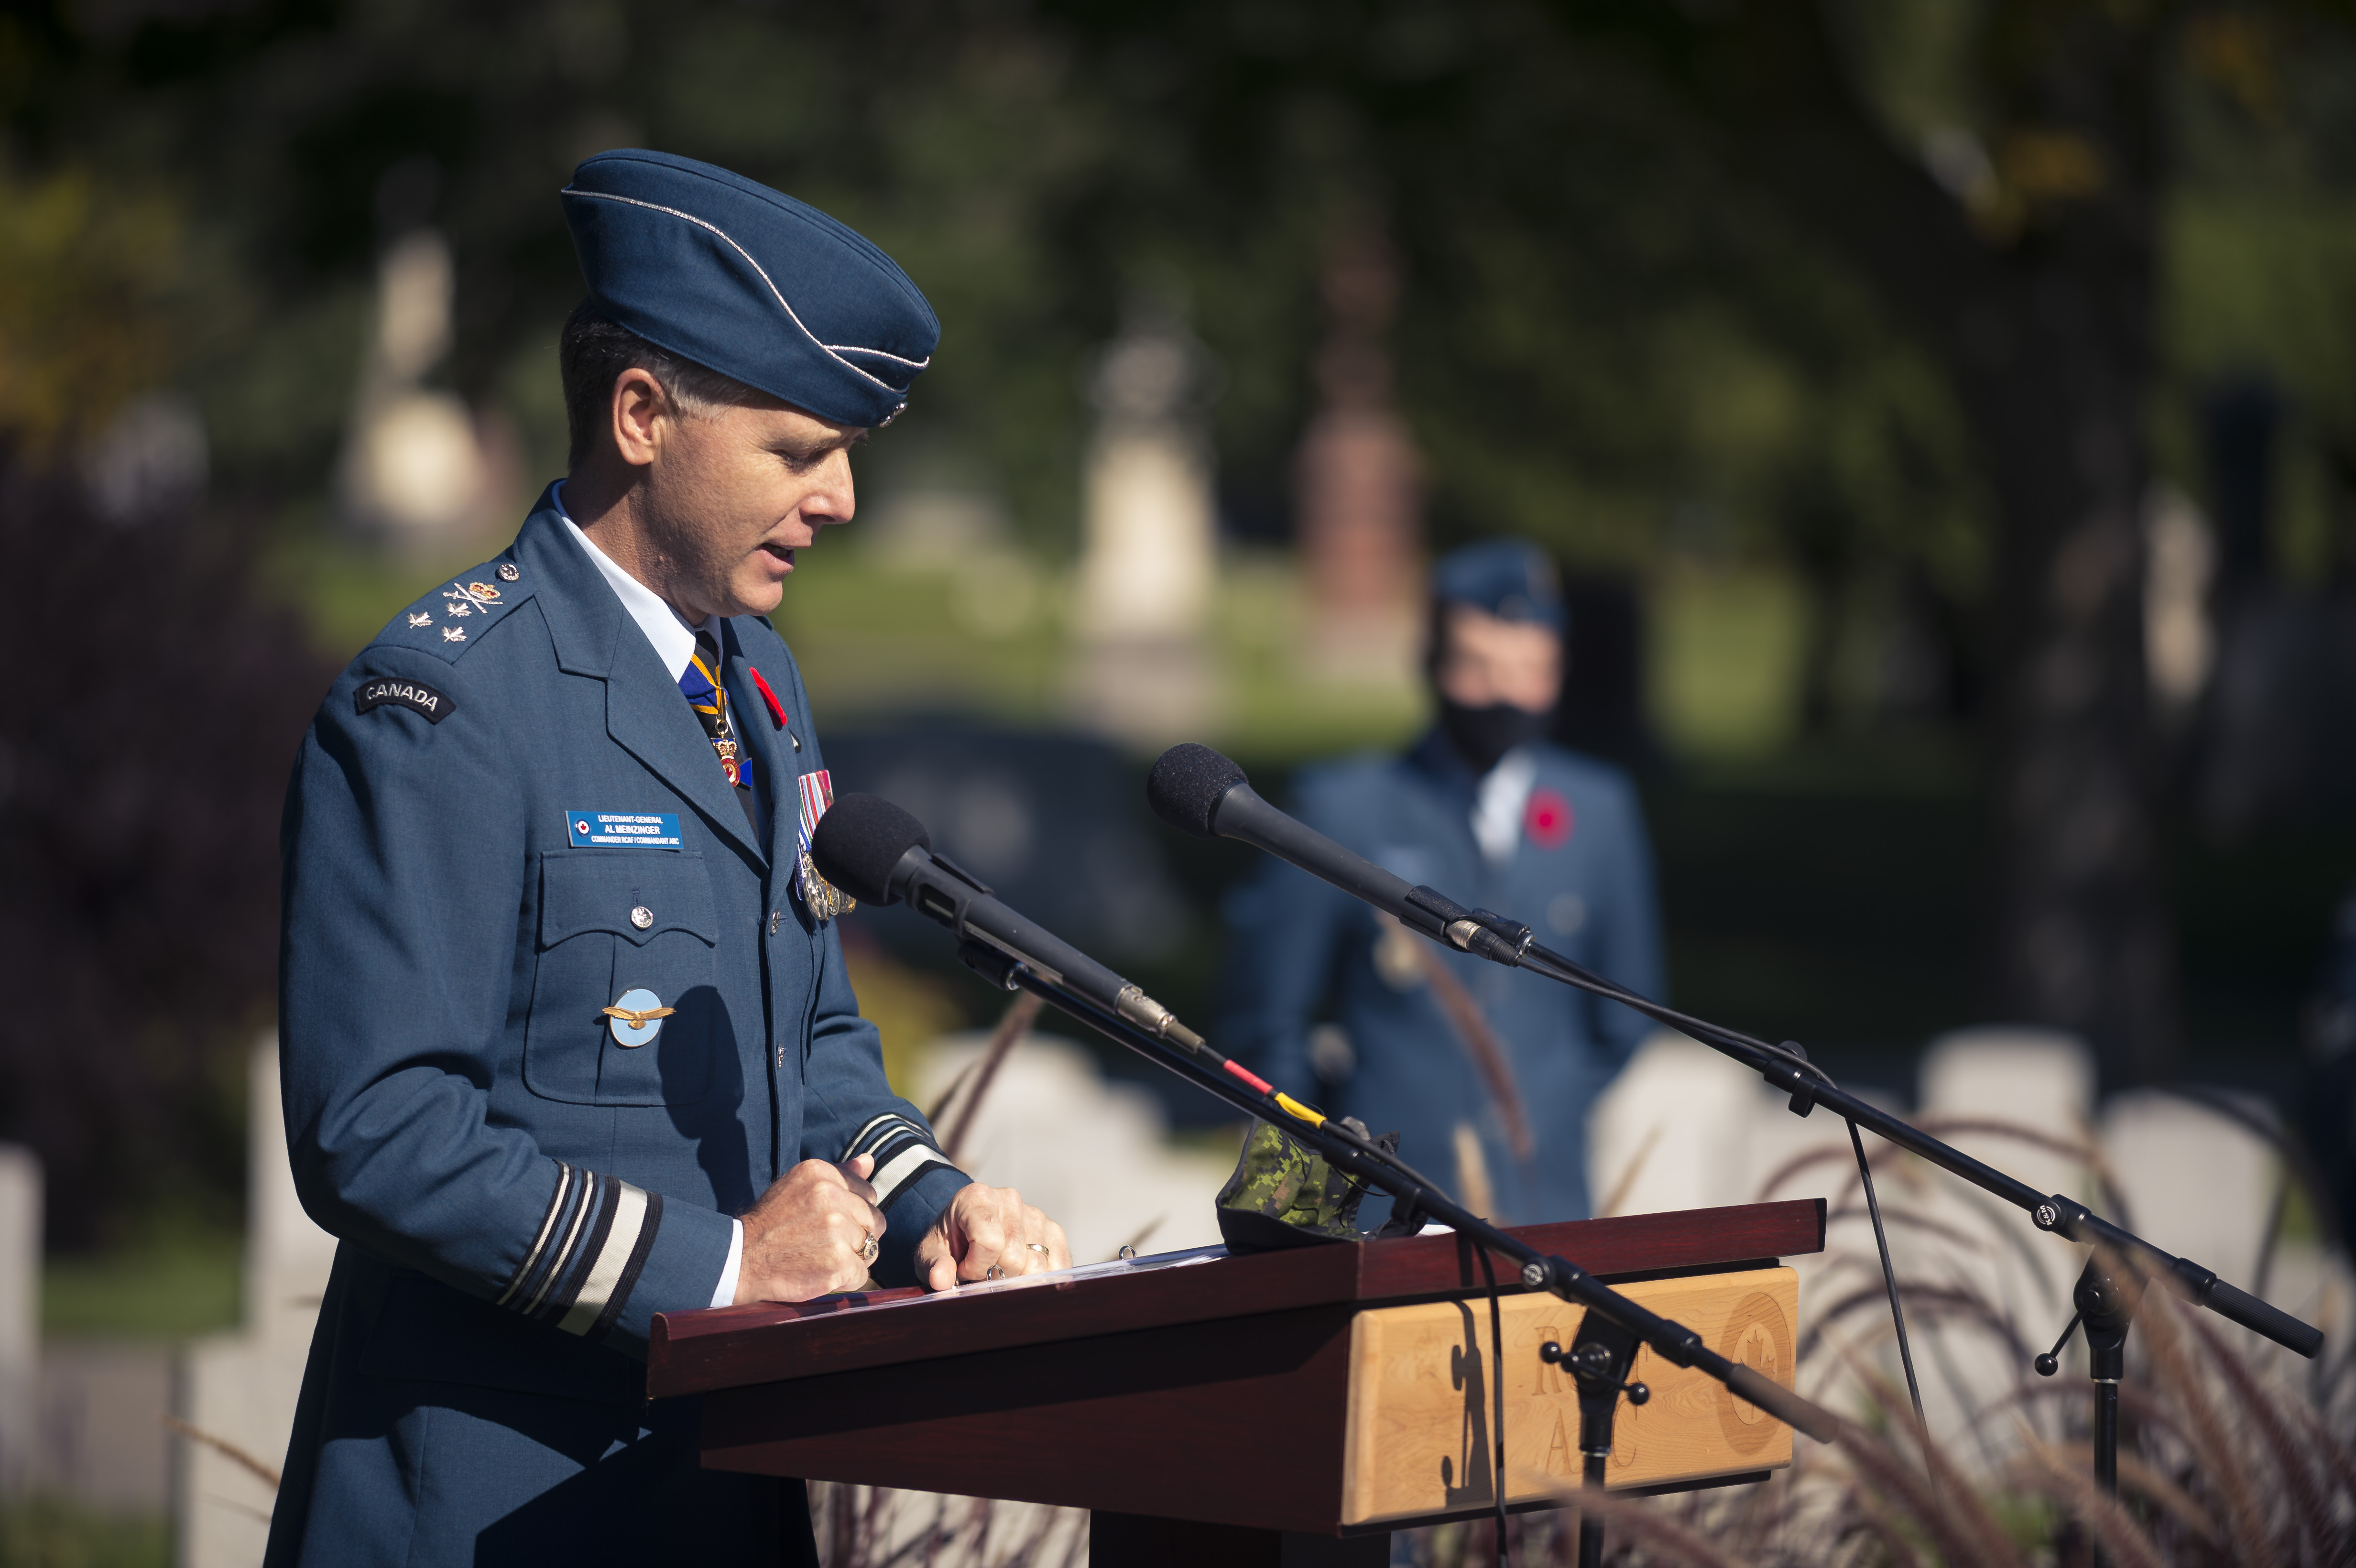 A man wearing a blue military uniform and wedge hat speaks behind a podium and microphones.